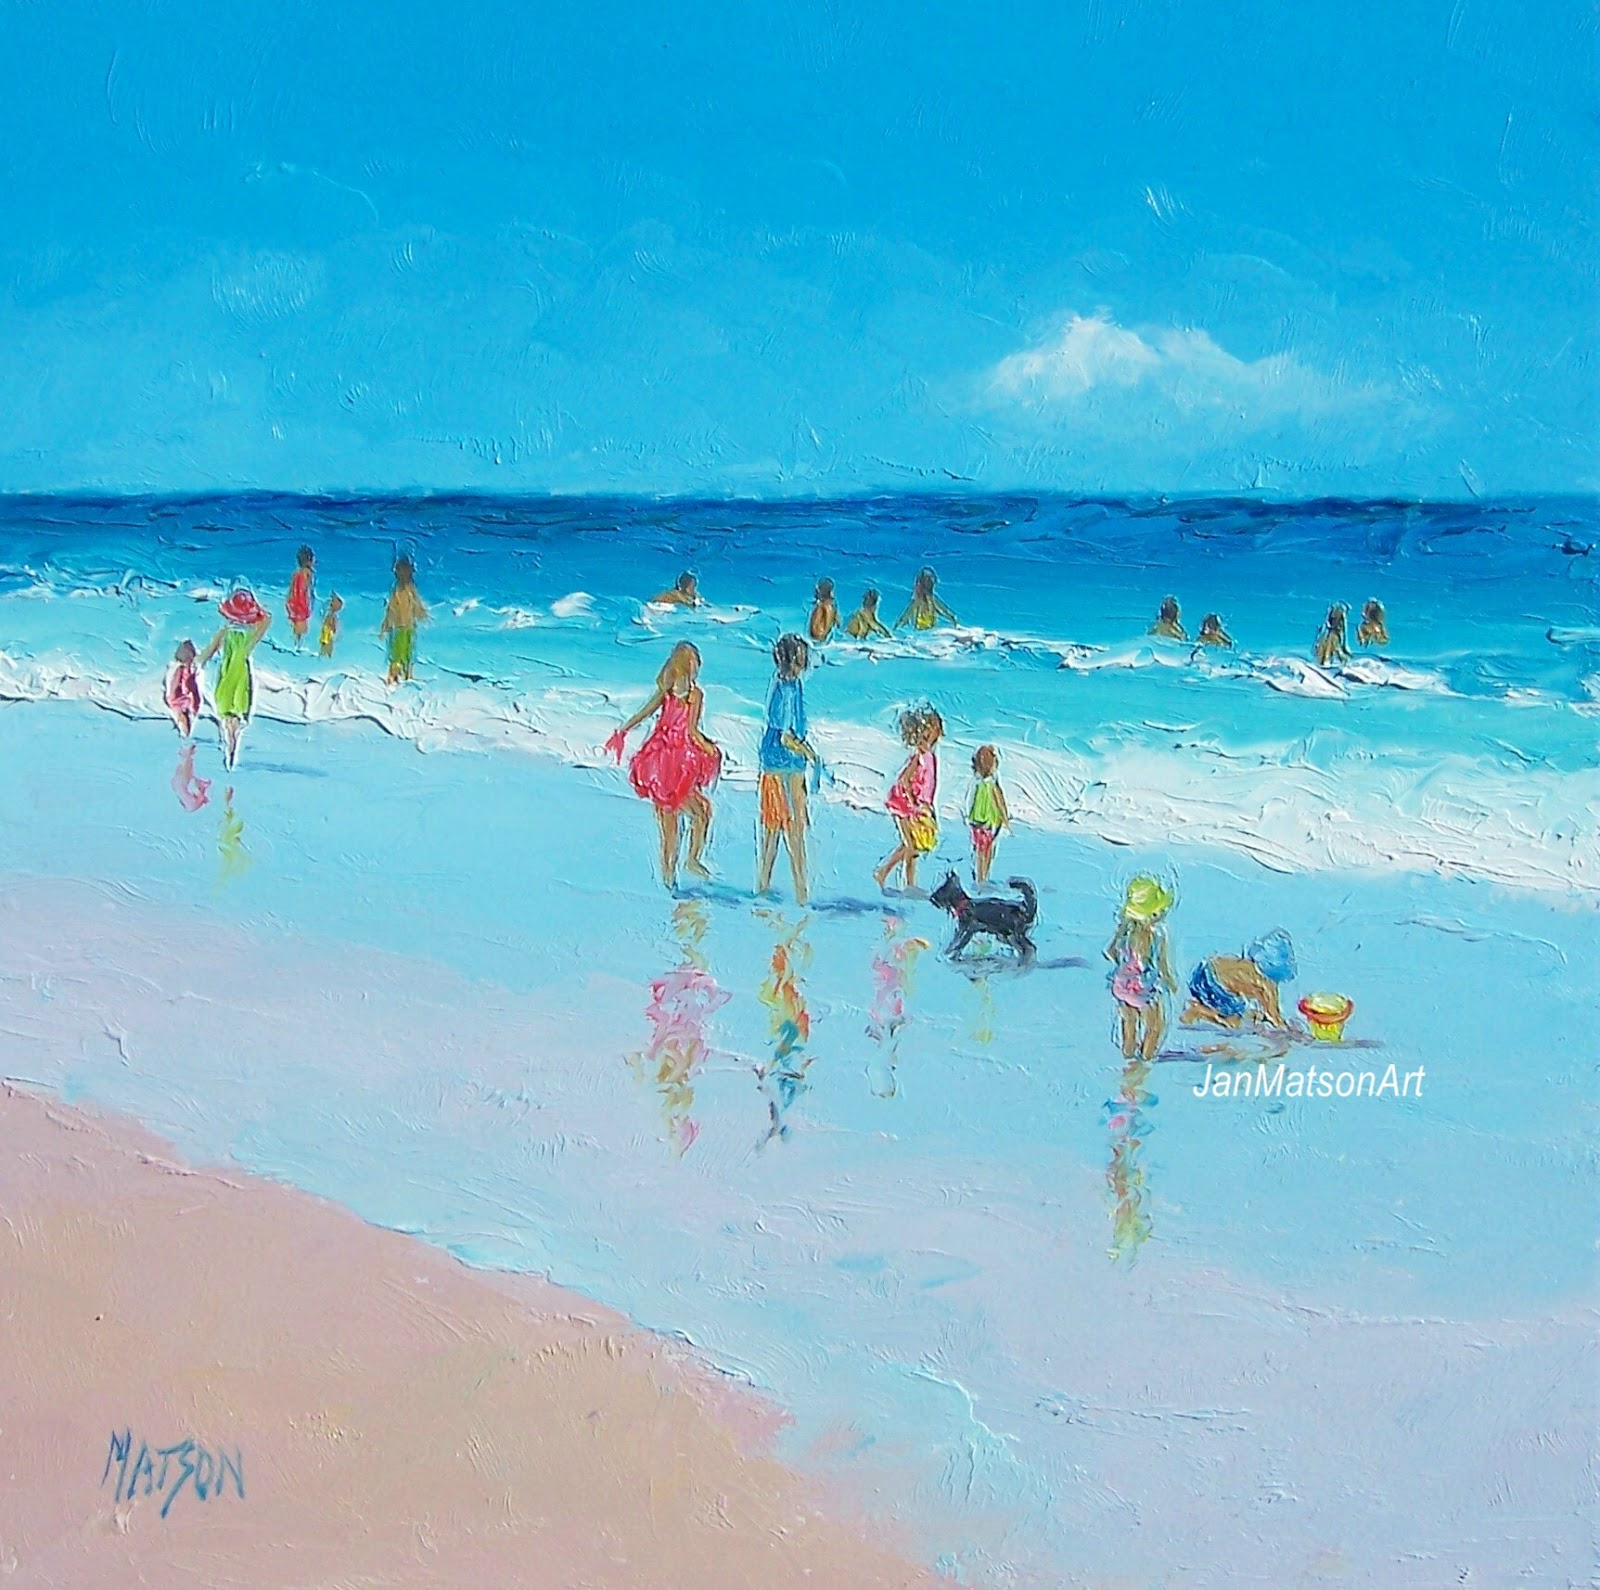 jan matson etsy art: etsy art beach scenes, 'reflections'